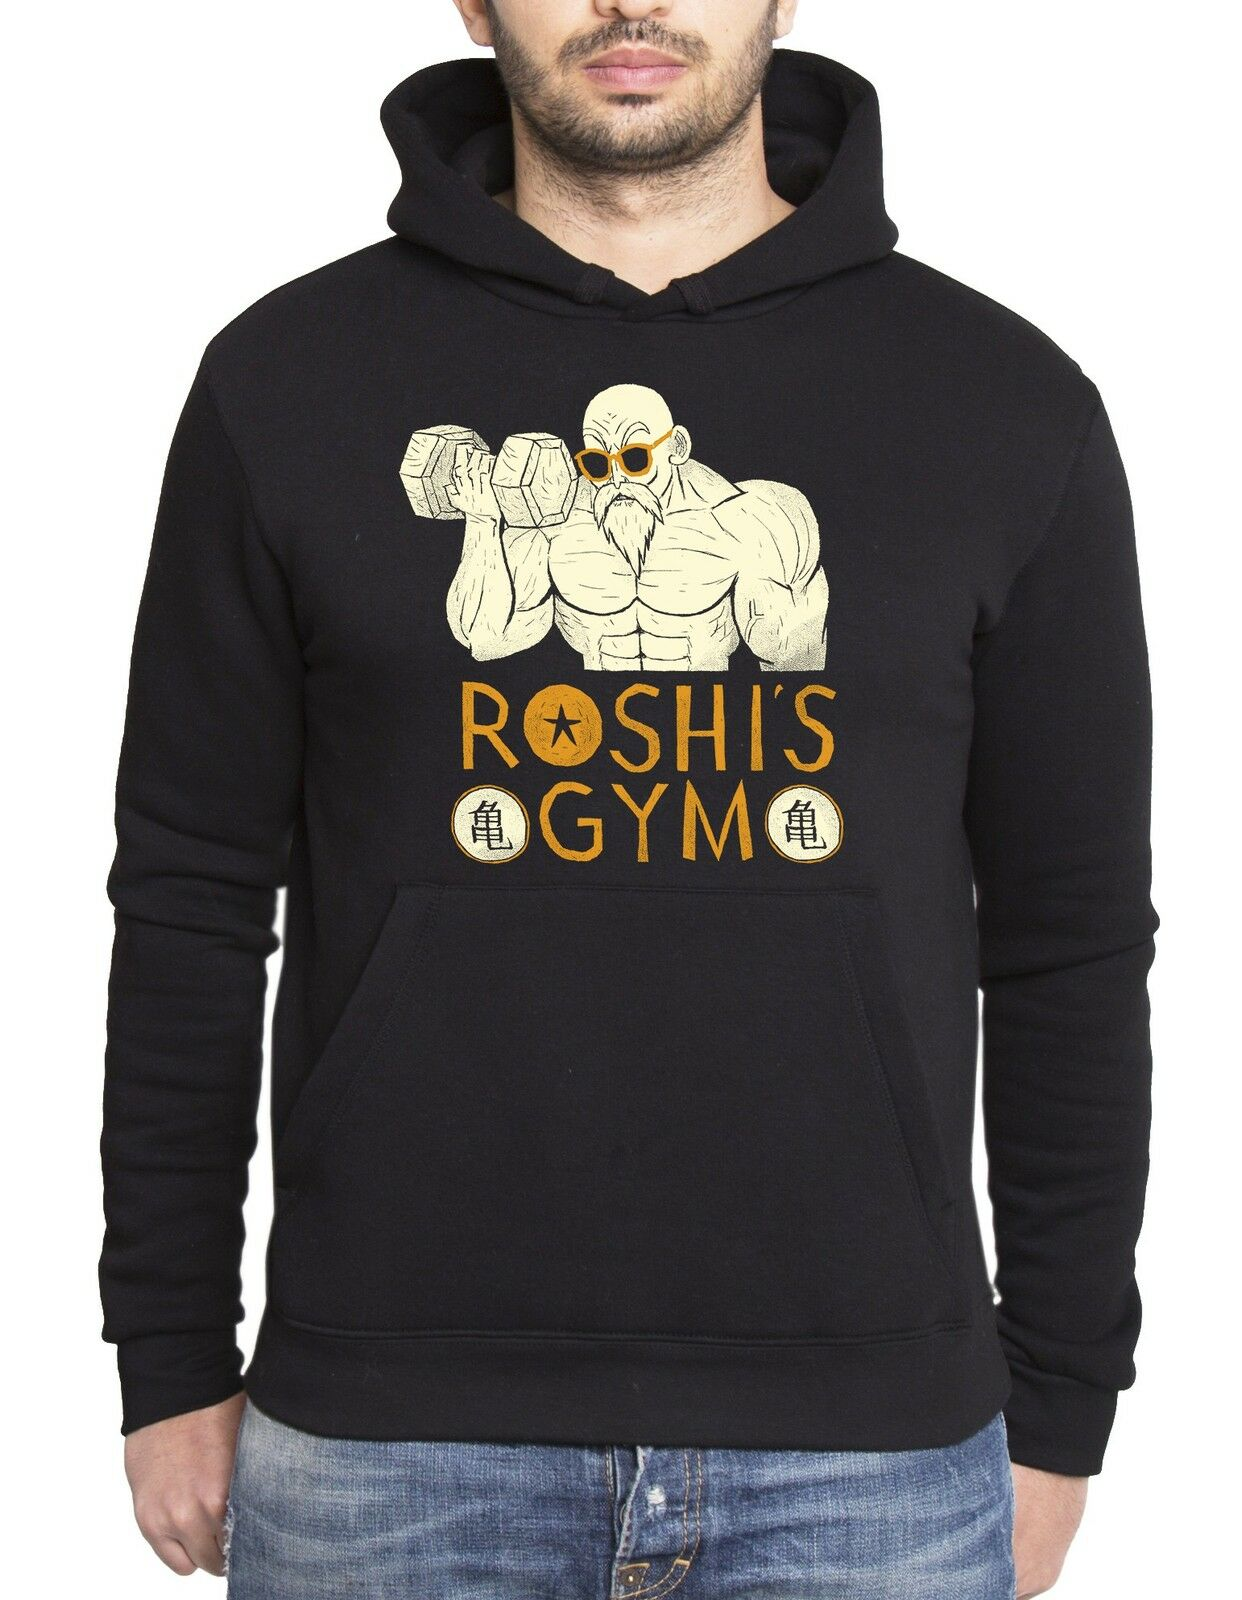 Roshis Gym Herren Hoodie Goku Dragon Master Son Ball Vegeta Turtle Roshi Db